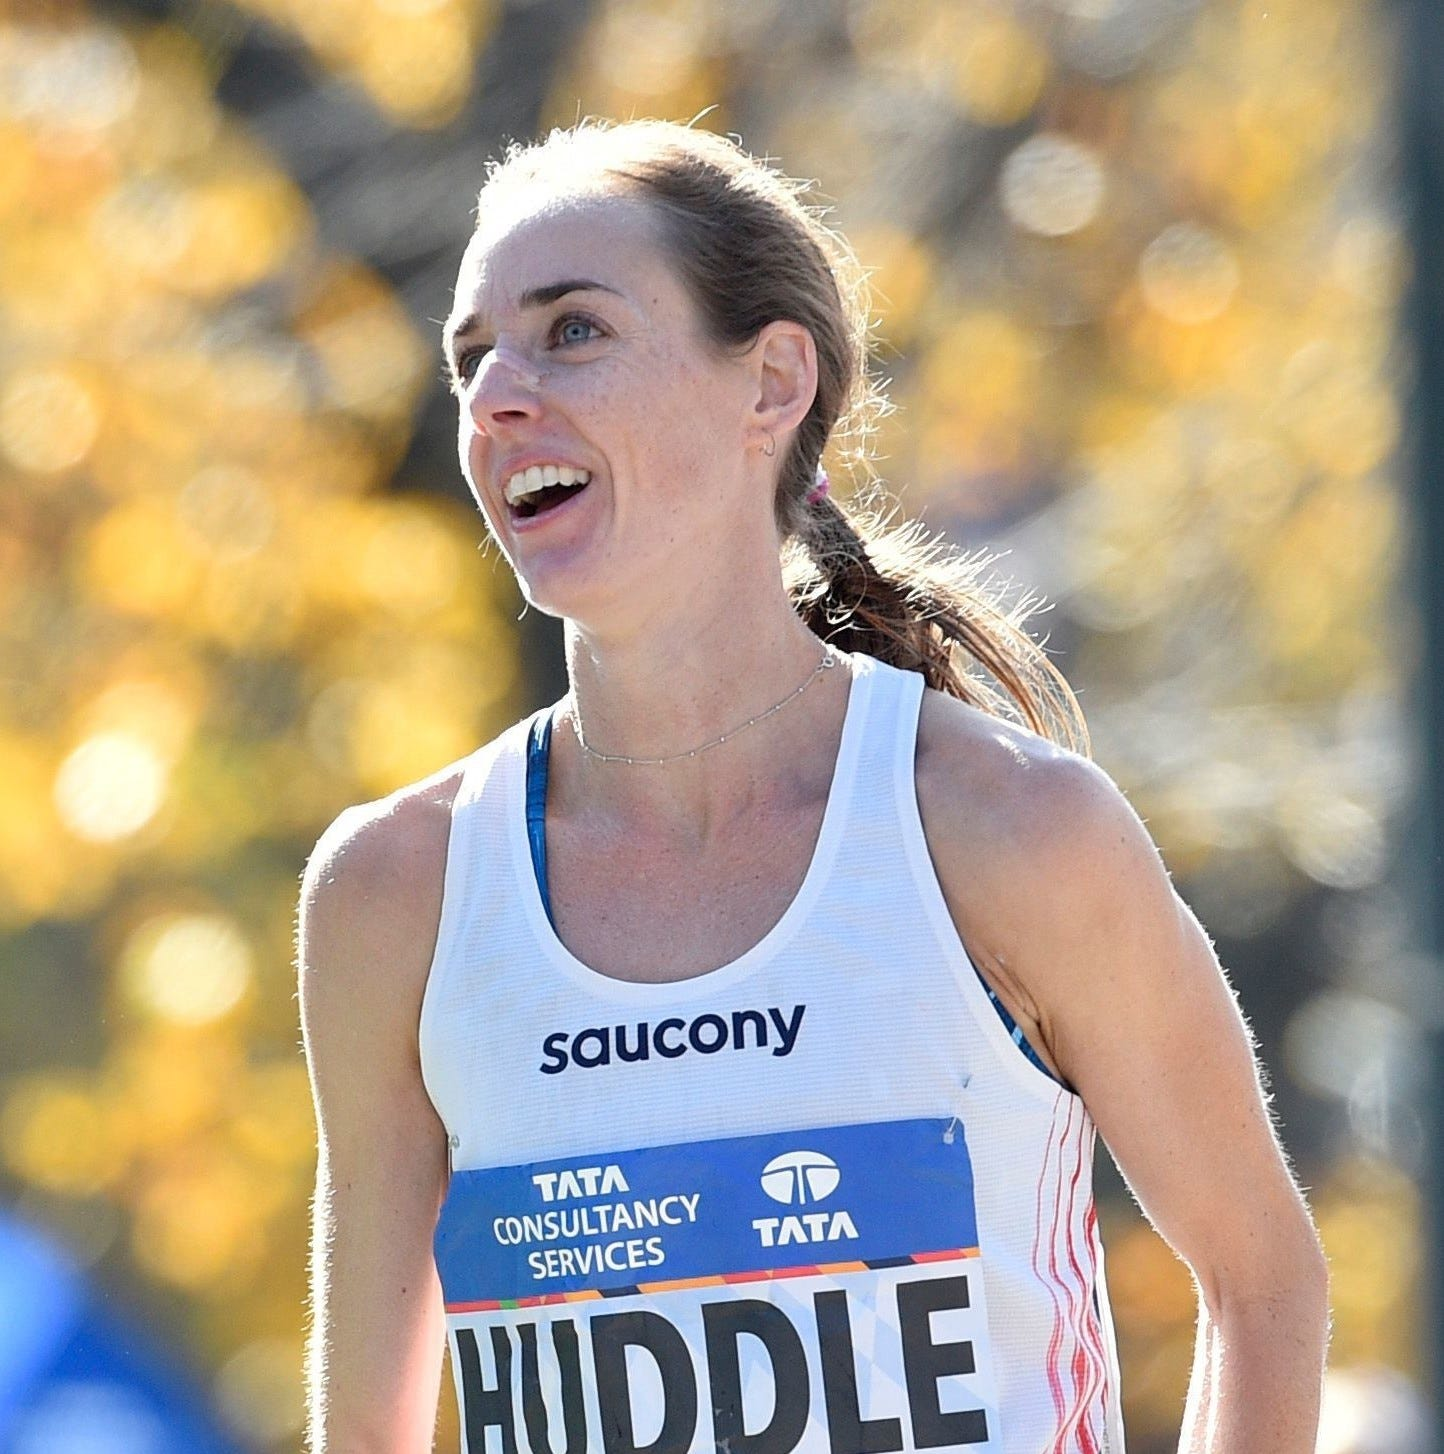 Huddle struggles to career-best marathon time, finishes 12th in London